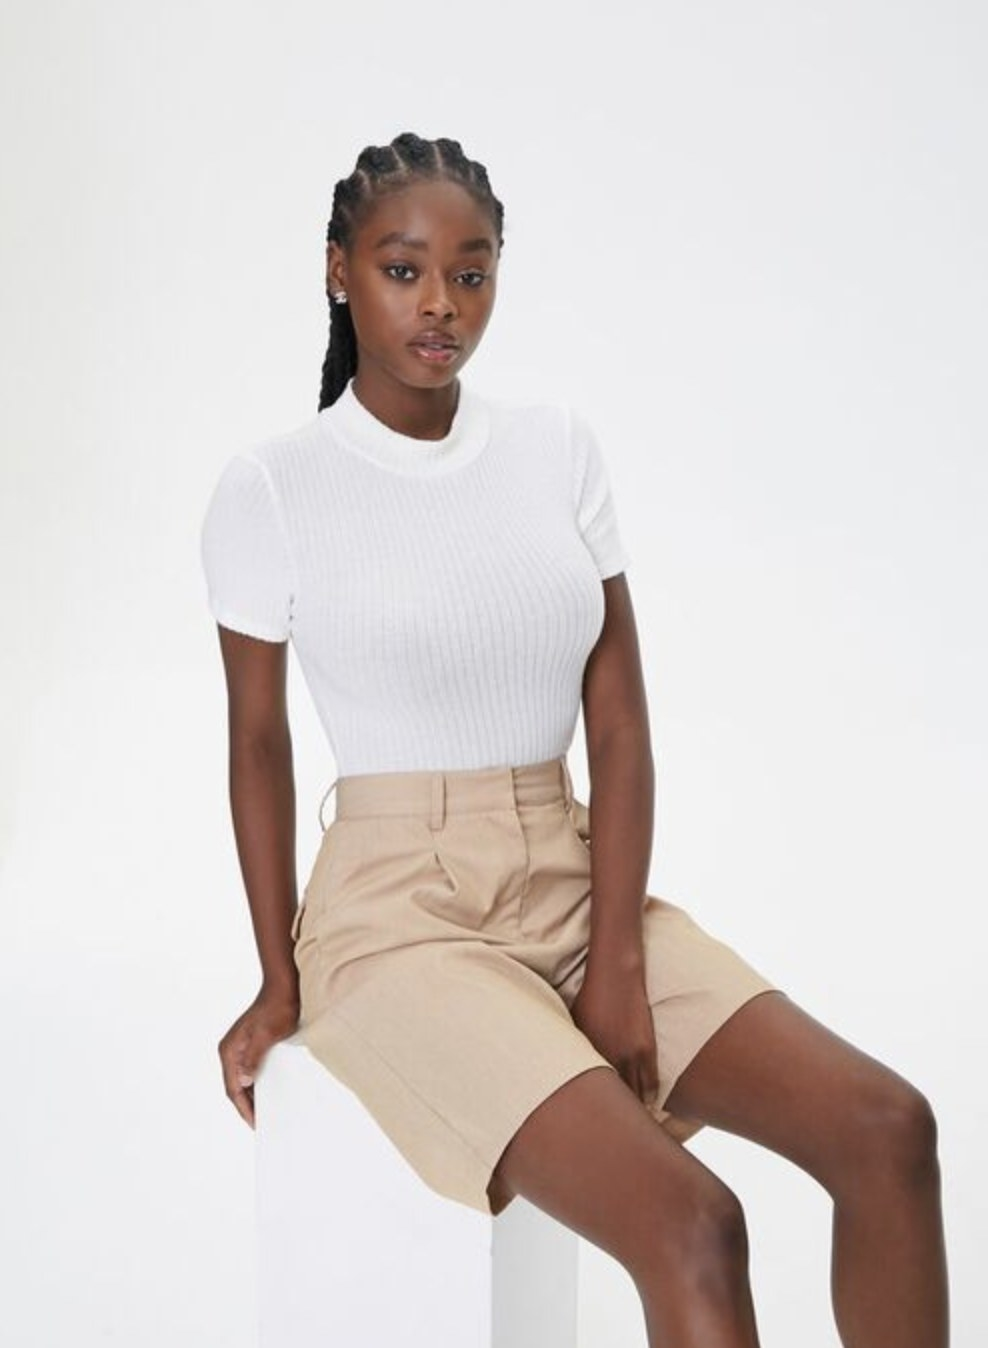 Model is wearing a white top and beige shorts